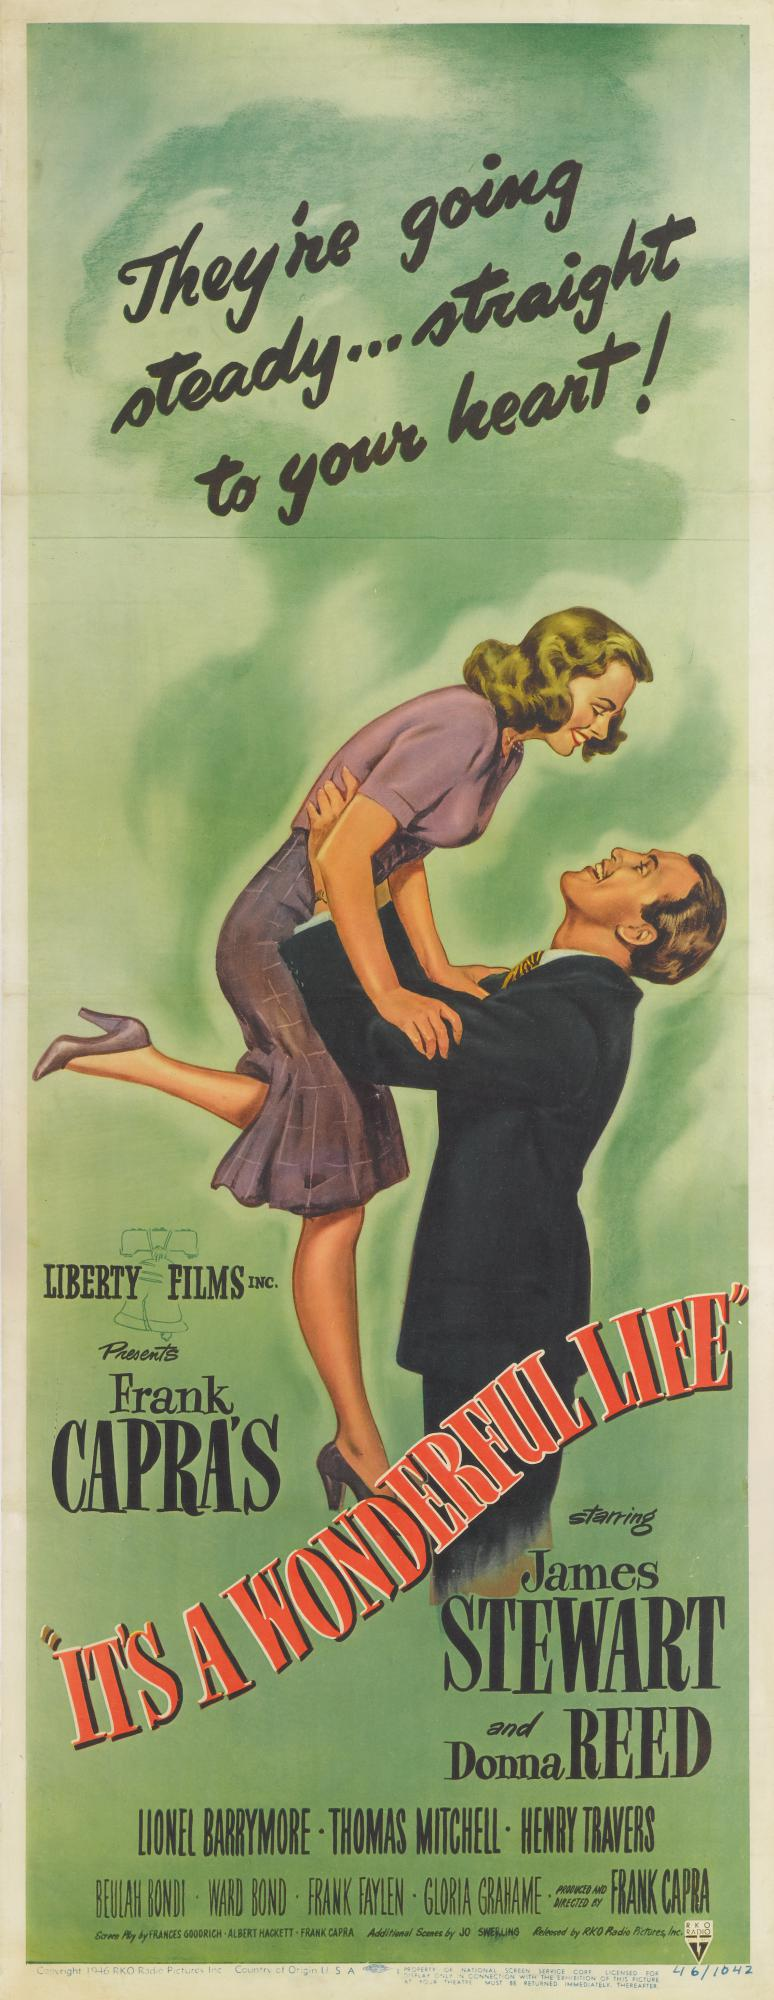 IT'S A WONDERFUL LIFE (1946) POSTER, US